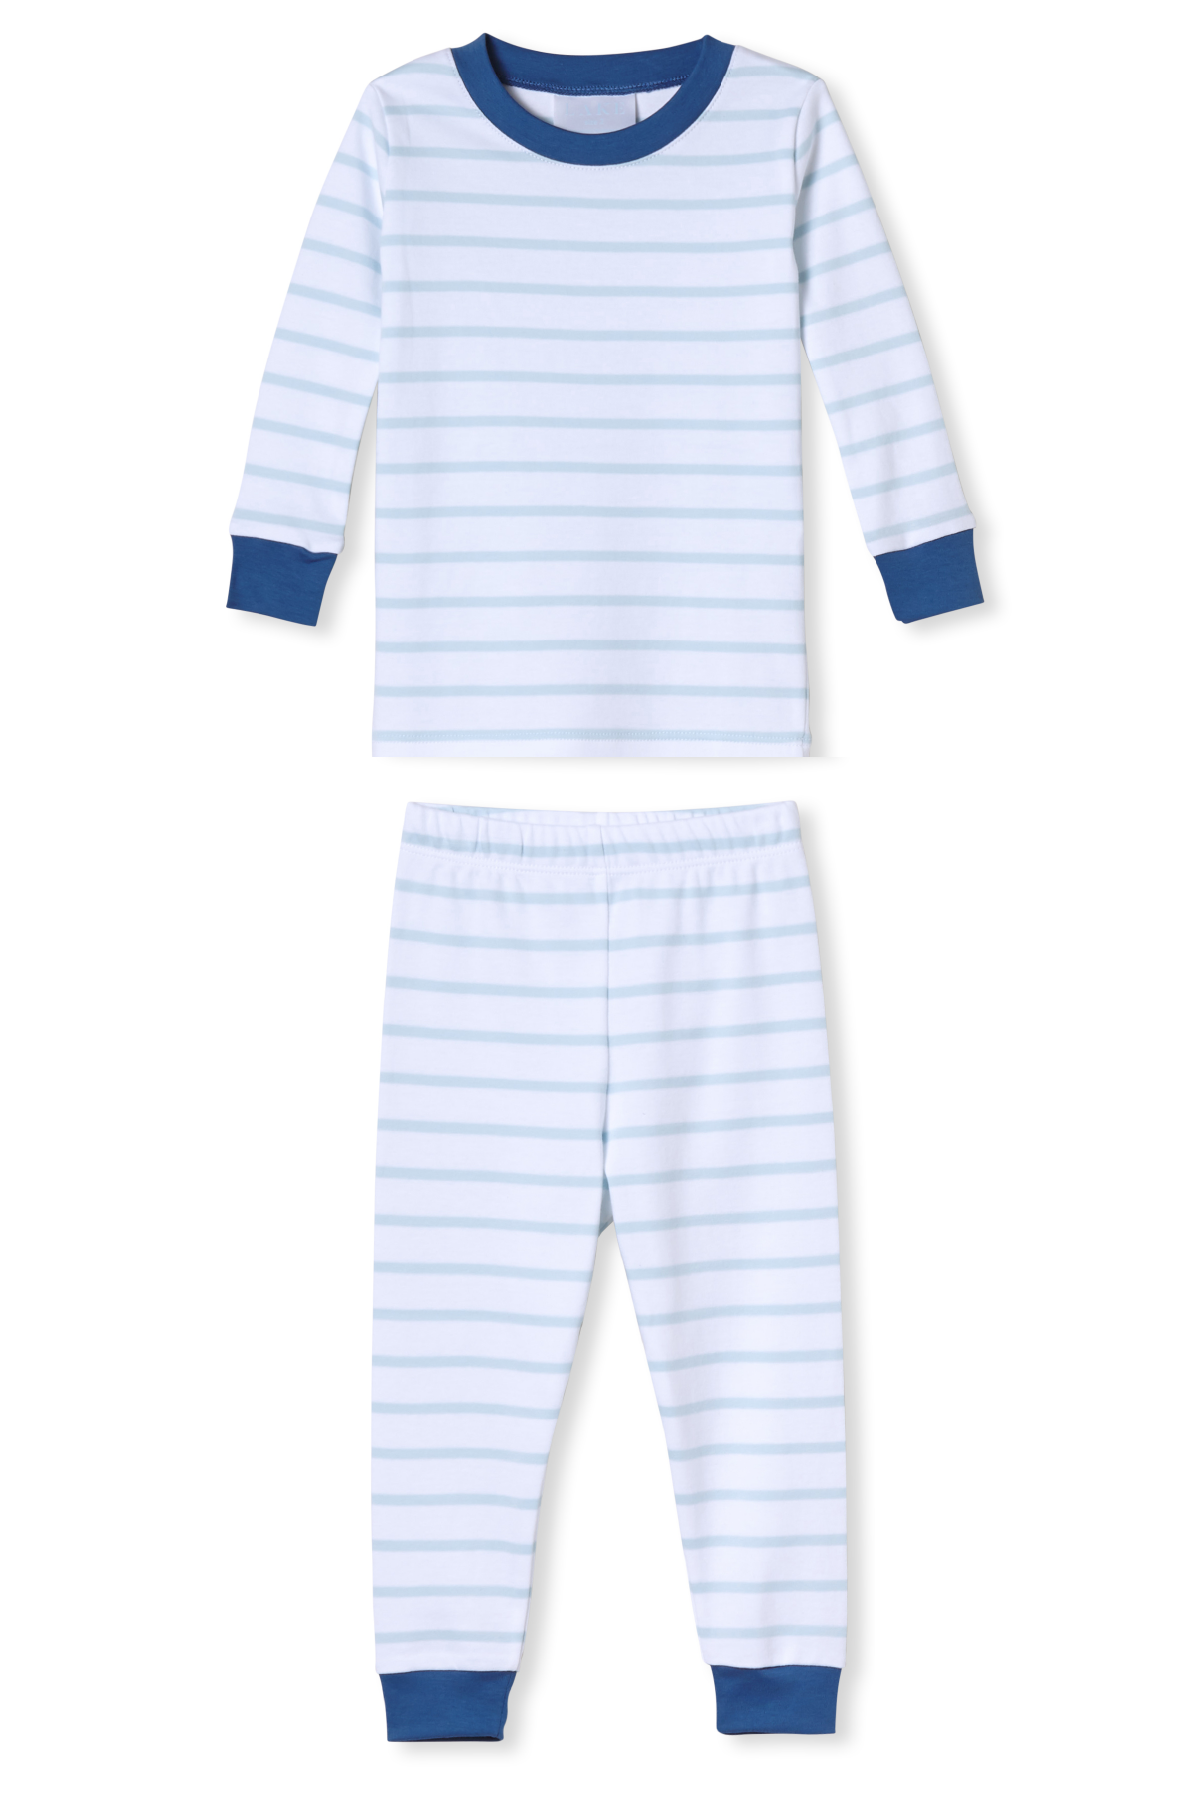 Kids Long-Long Set in Oxford Blue